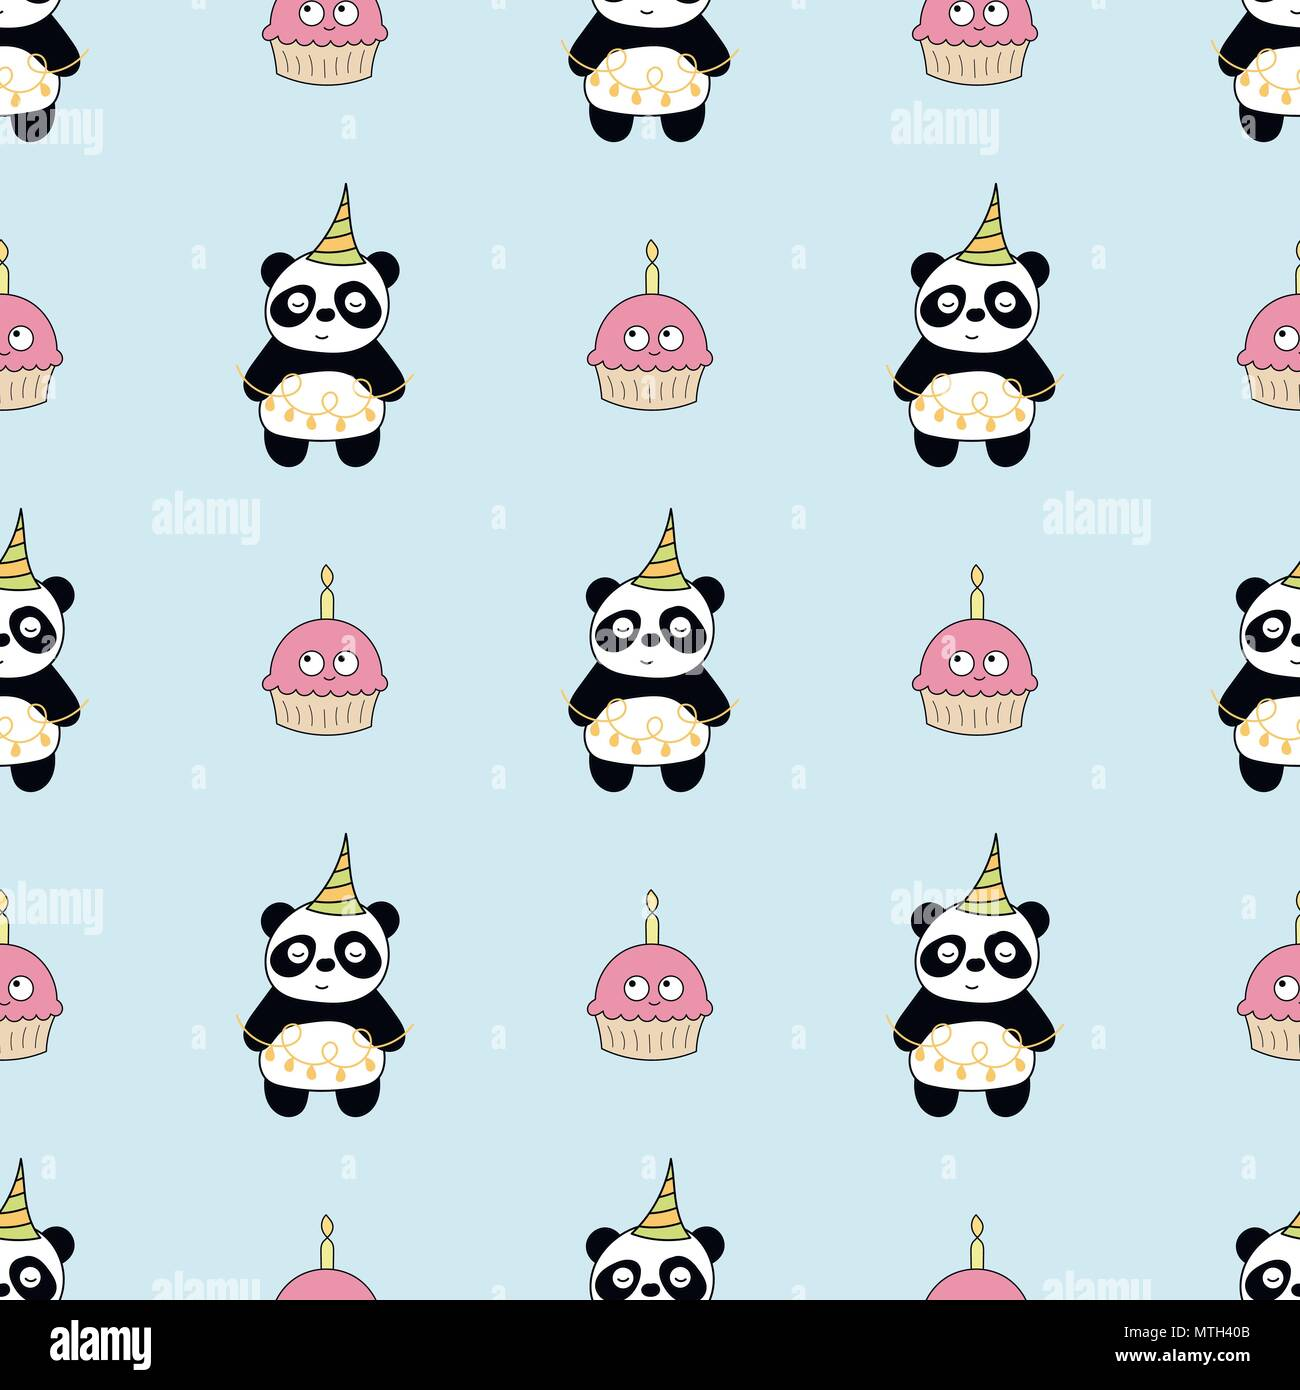 Seamless Baby Pattern With Cute Pandas And Cupcakes Stock Vector Art